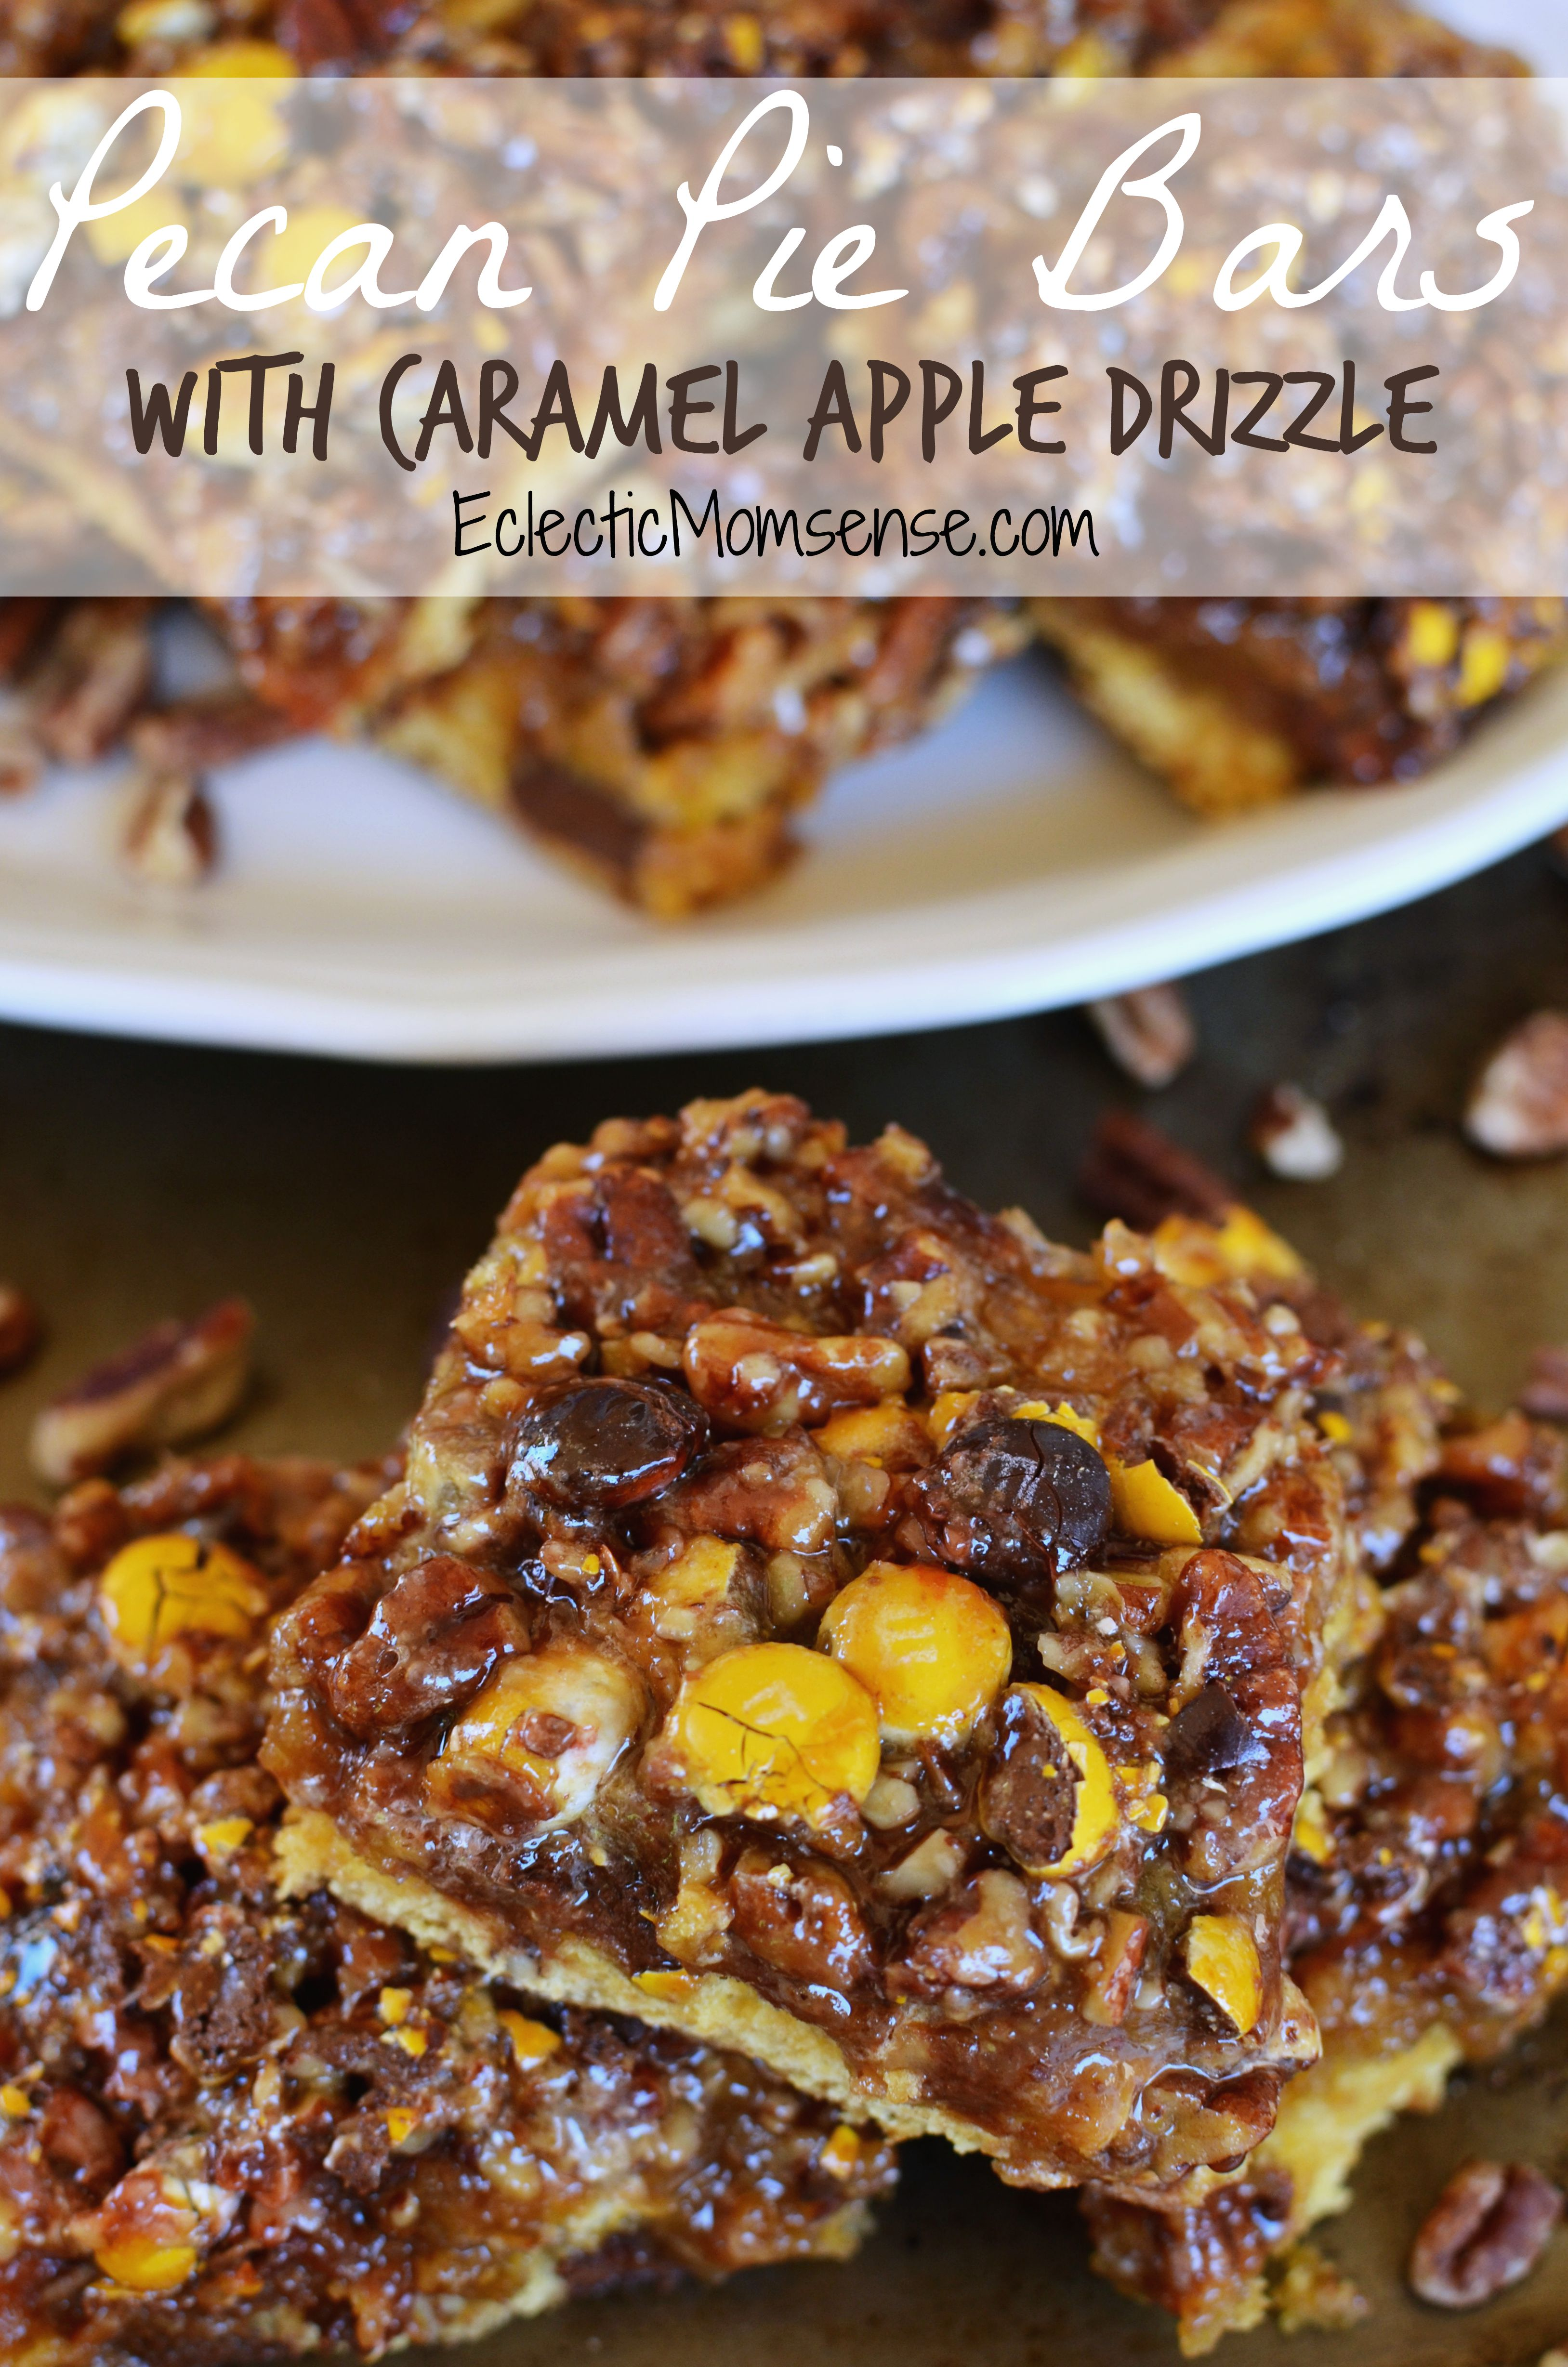 Pecan Pie Bars with Caramel Apple Drizzle - Eclectic Momsense